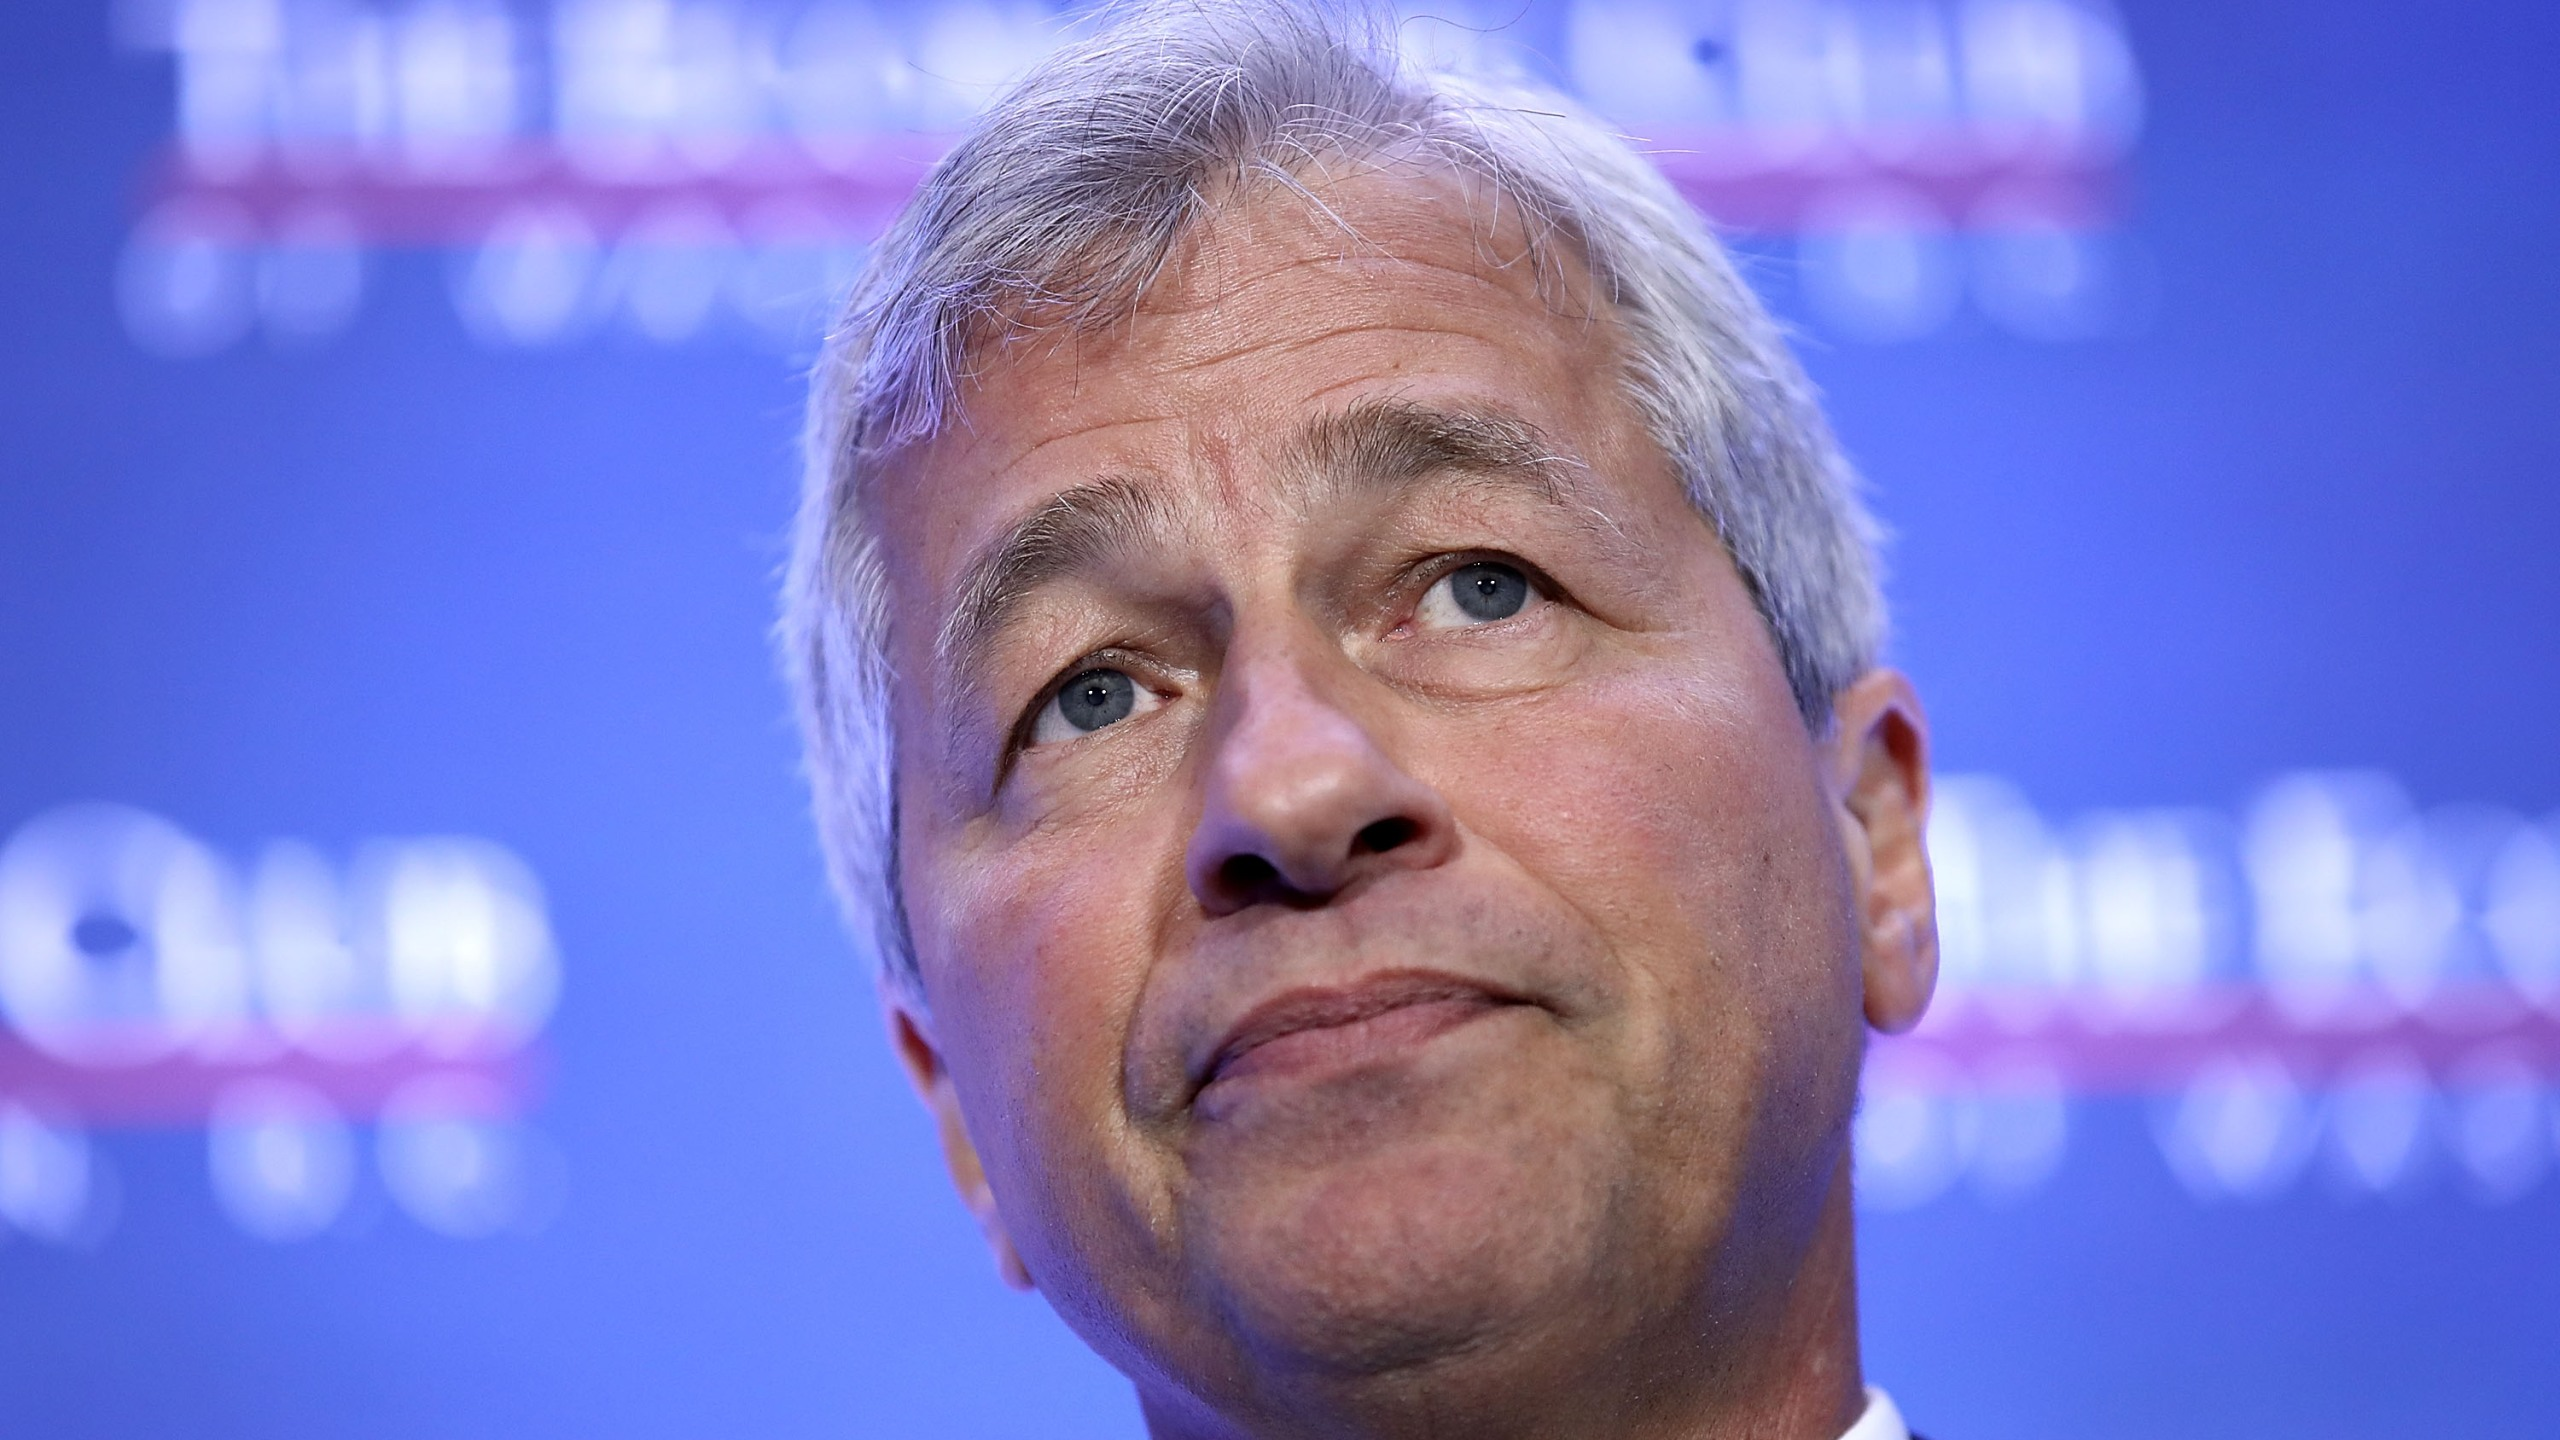 Chase CEO Jamie Dimon Addresses The Economic Club Of Washington